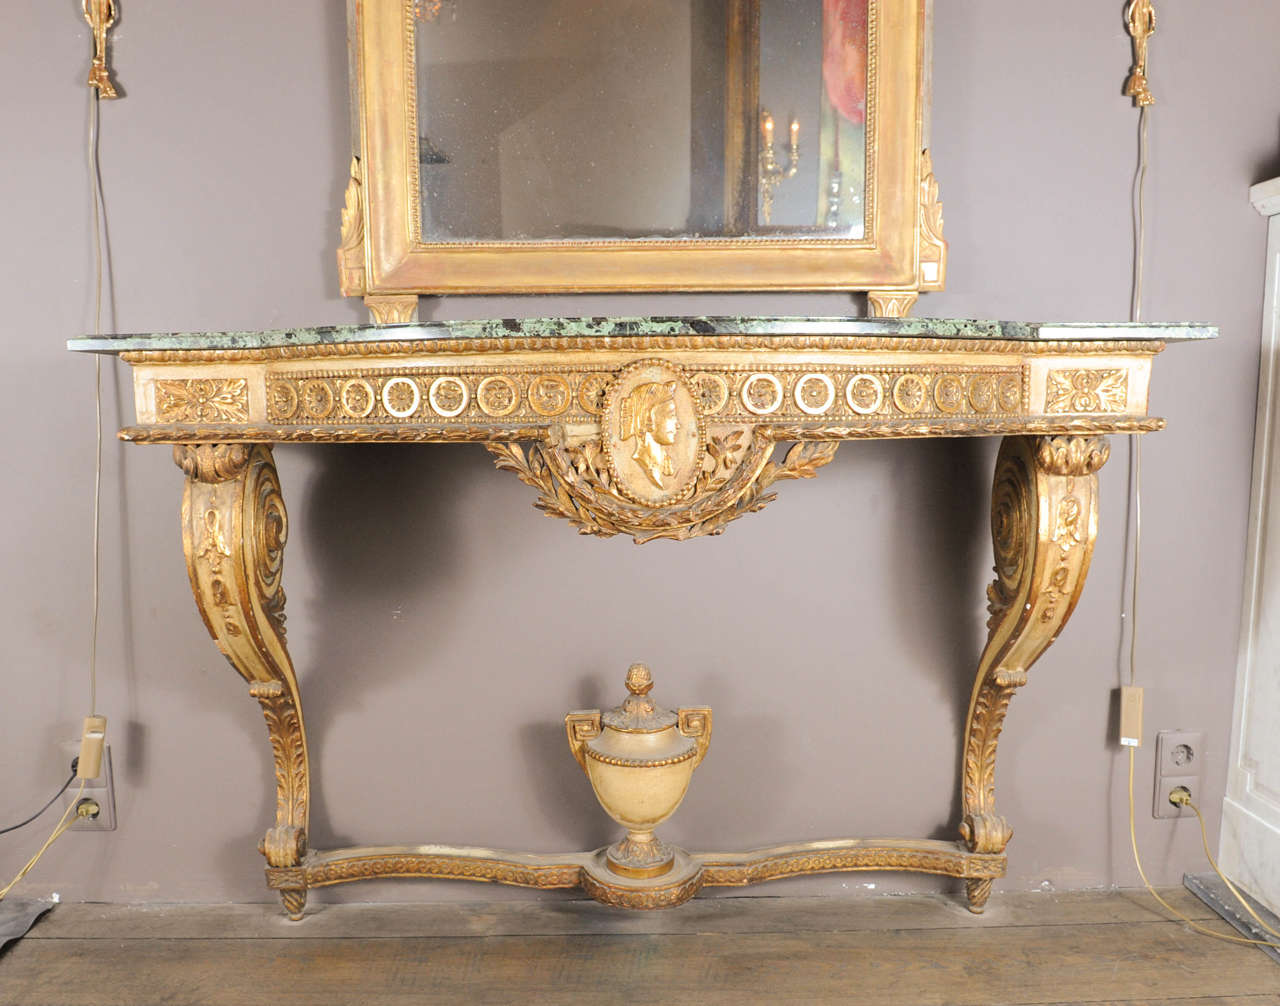 A wooden console table napoleon iii with marble top for sale at a wooden console table napoleon iii with marble top 2 geotapseo Gallery